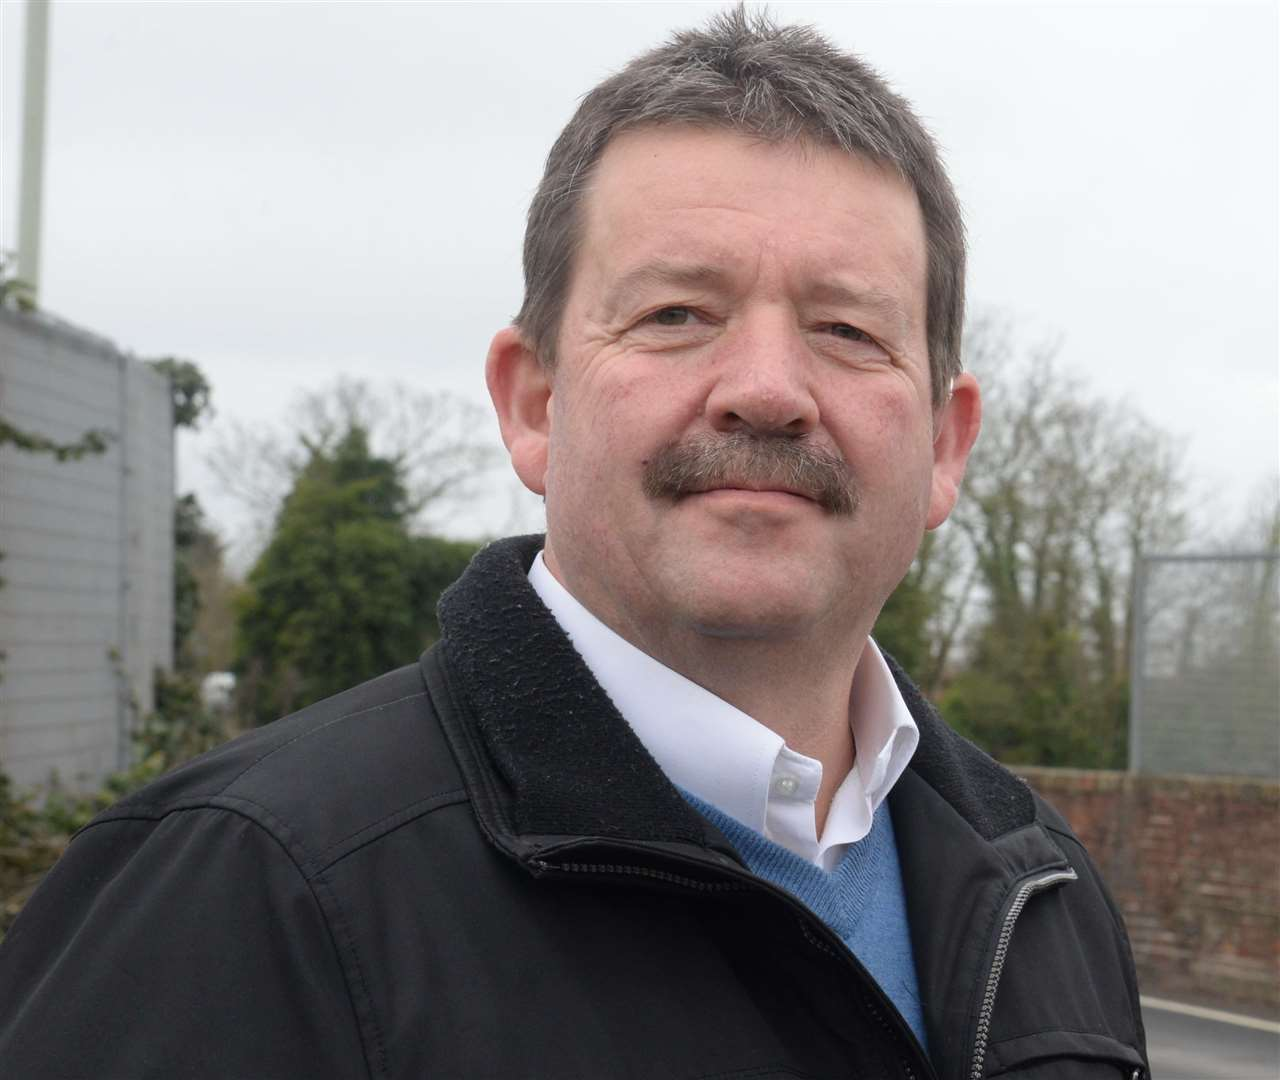 Beltinge councillor Ian Stockley